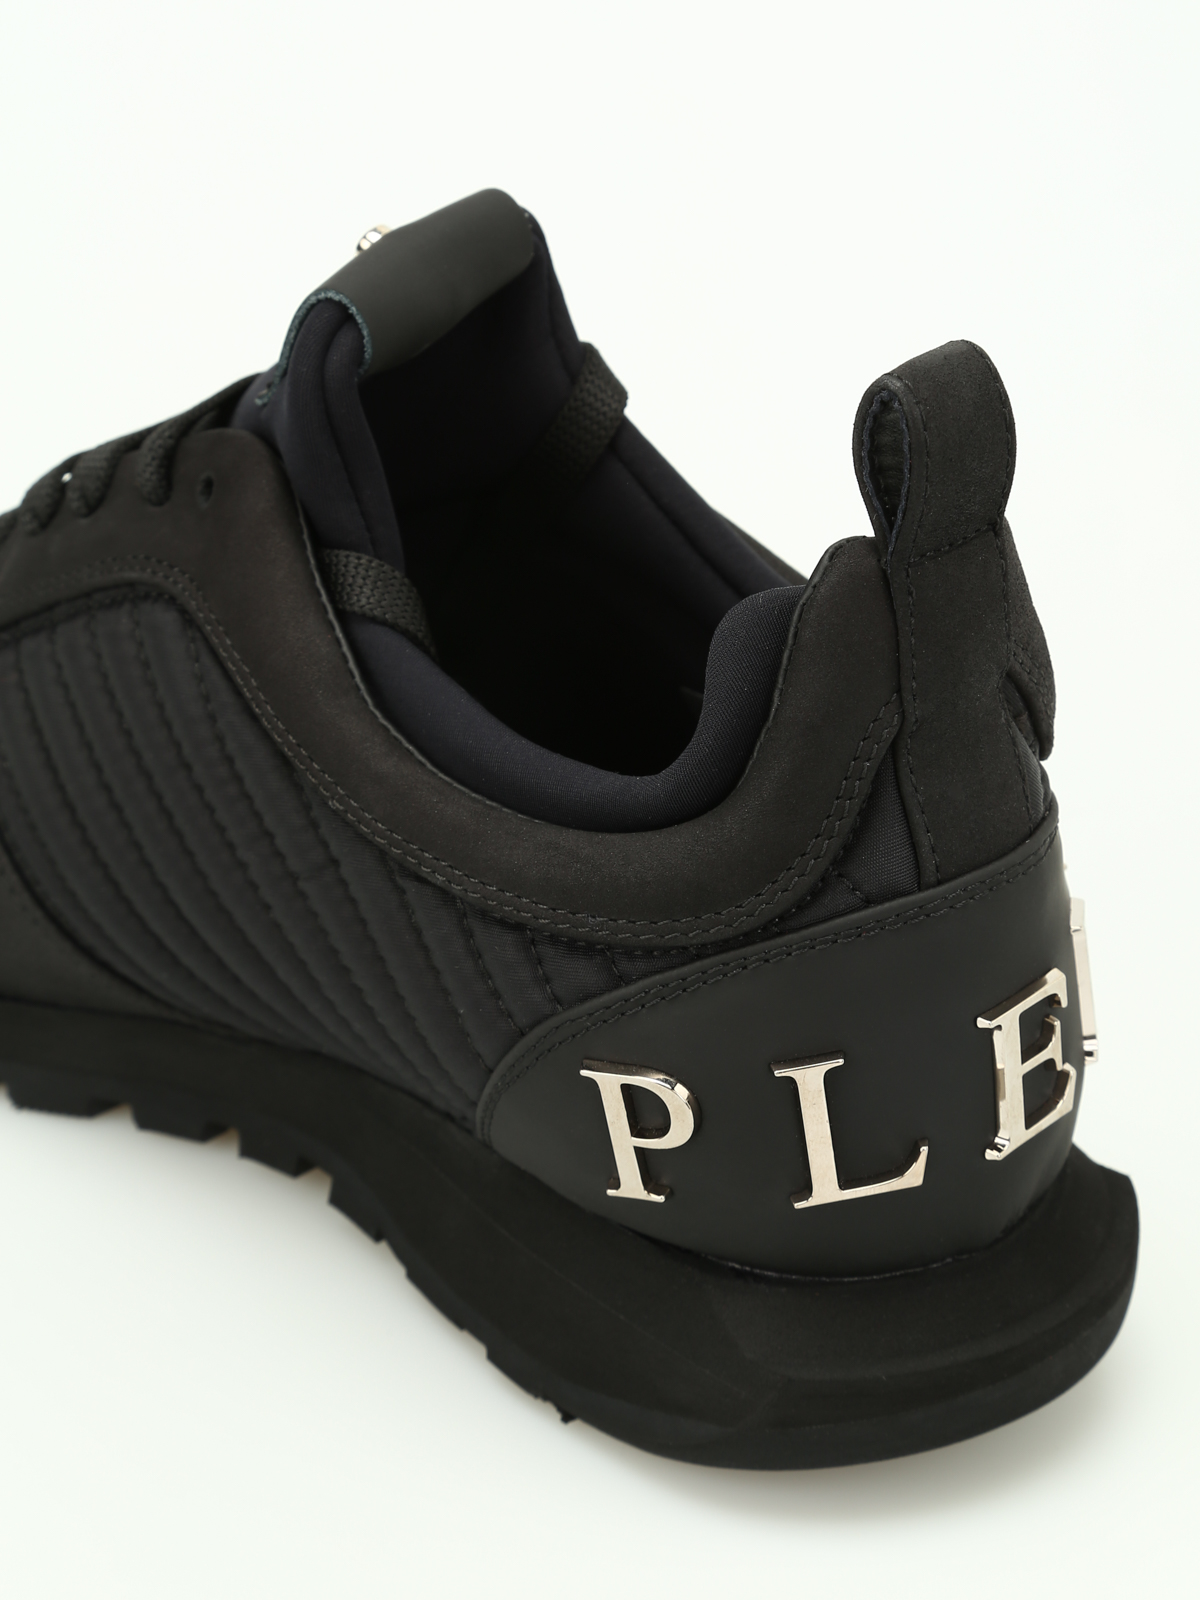 Philipp Plein Setting Quilted Sides Sneakers Trainers